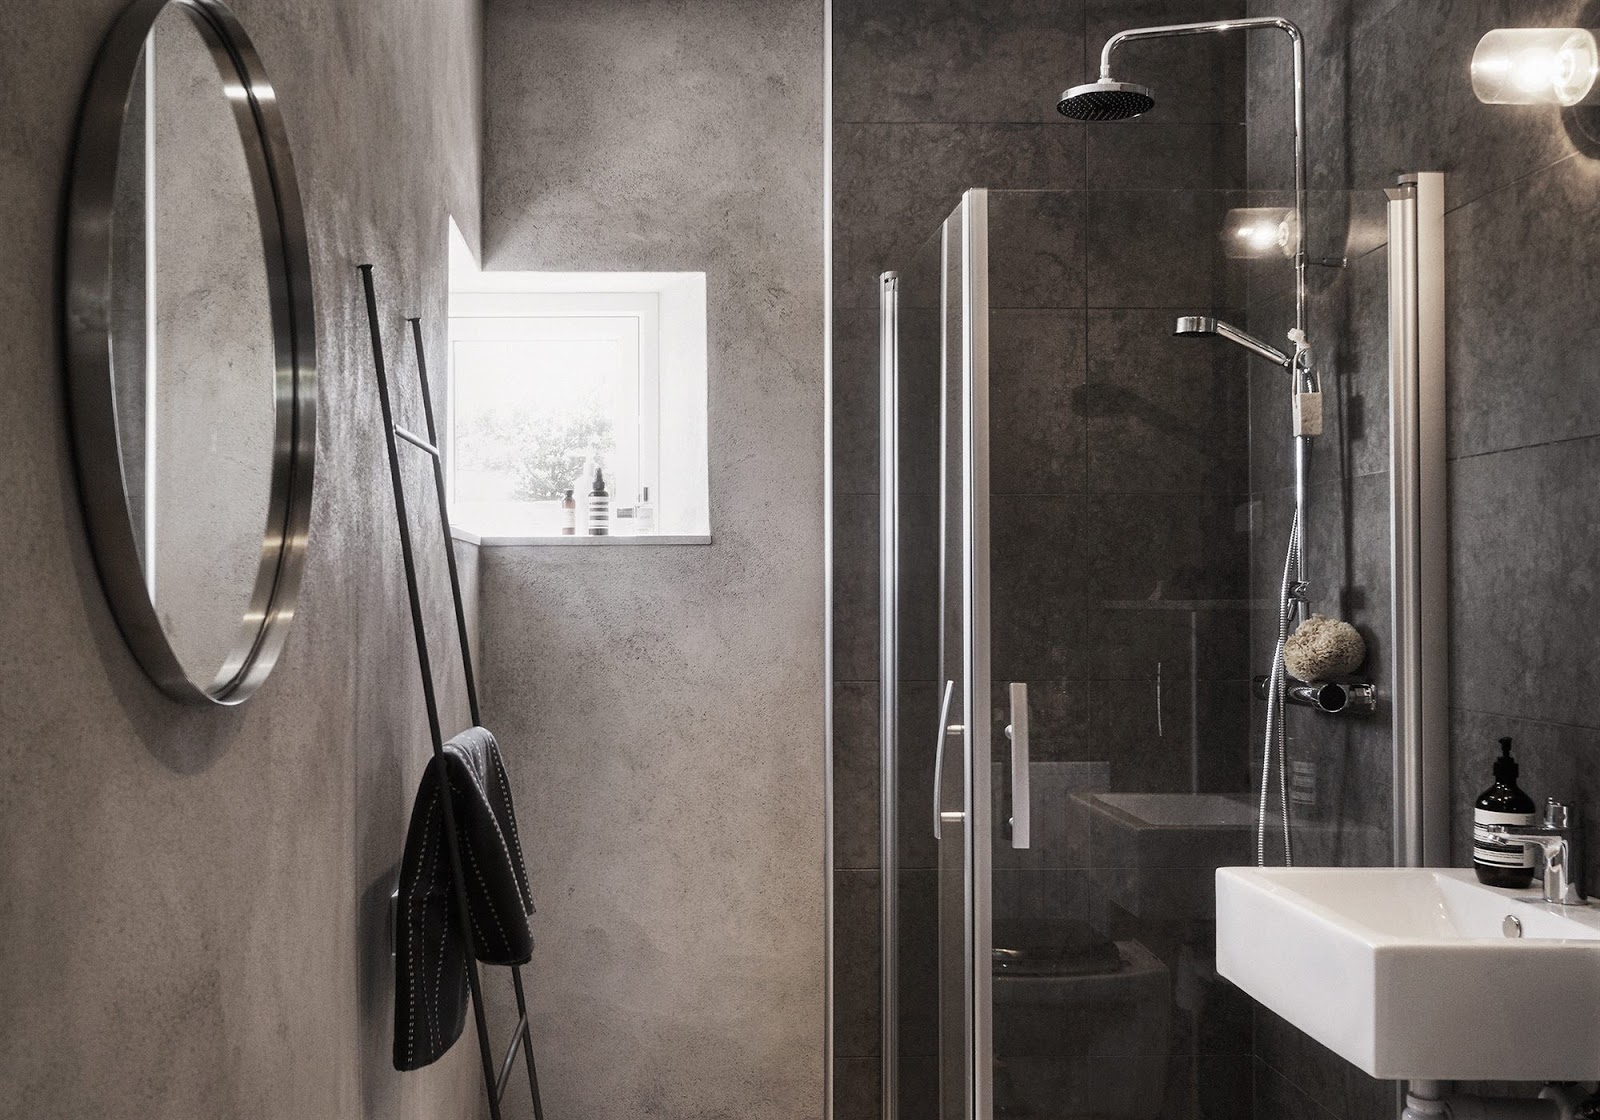 The bathroom is decorated with concrete and dark tiles that remind of concrete too